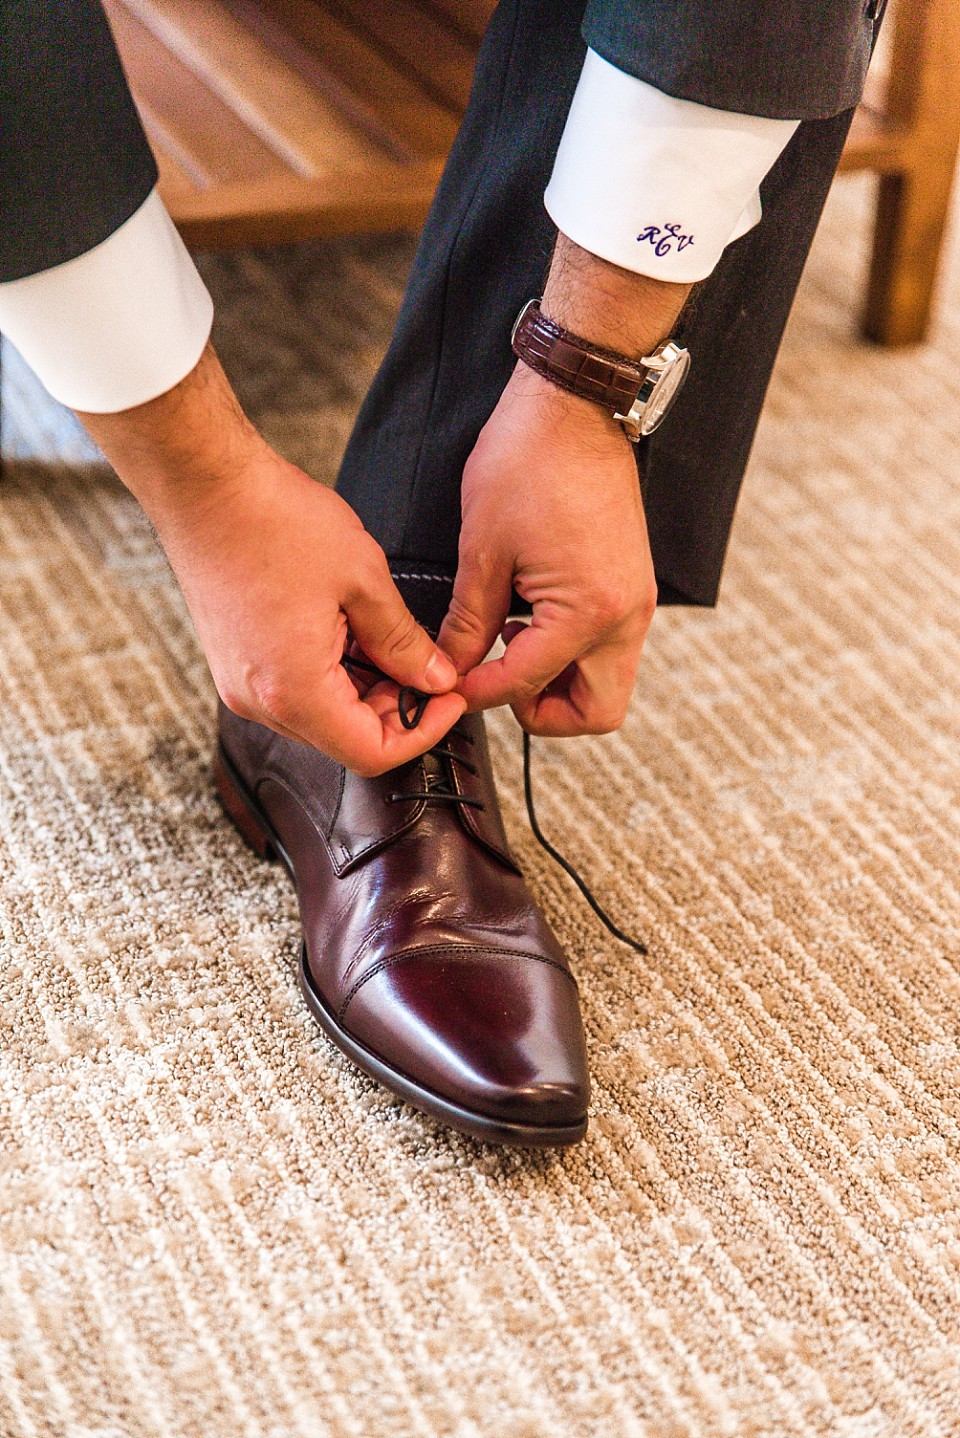 groom tying his shoe before the ceremony